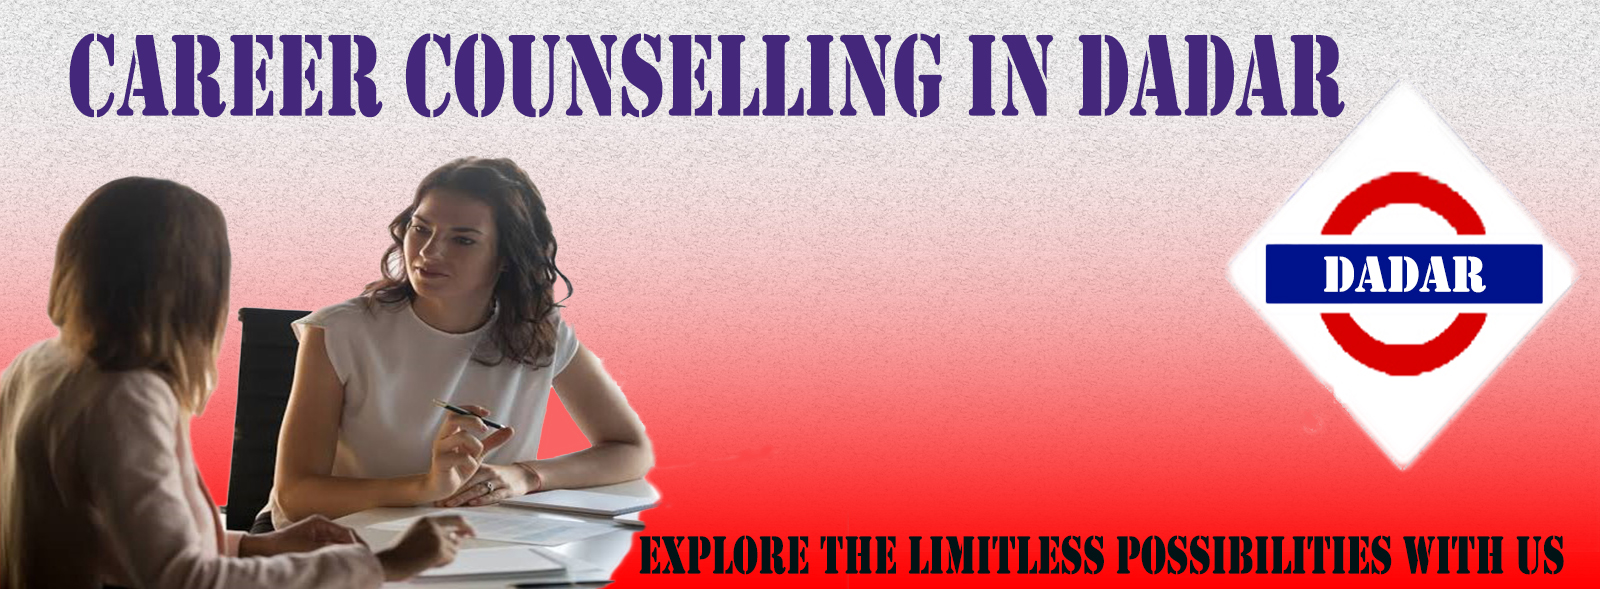 career counselling in dadar